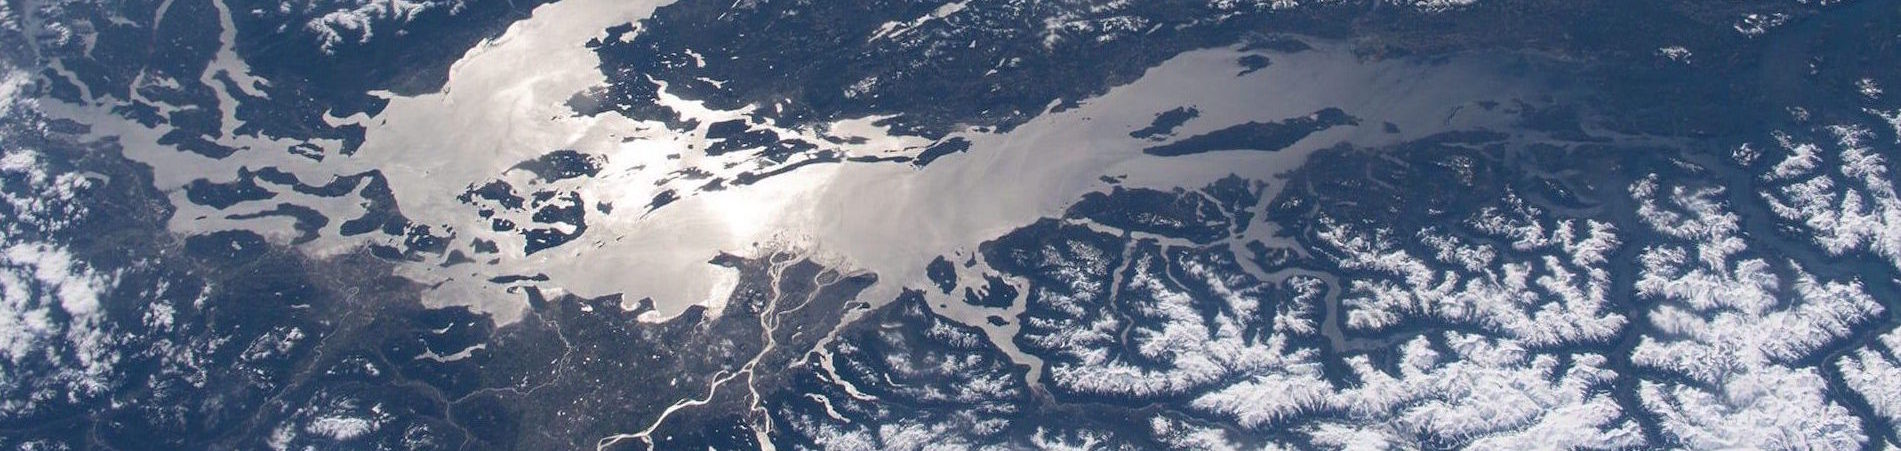 Aerial view of the Salish sea in google earth image